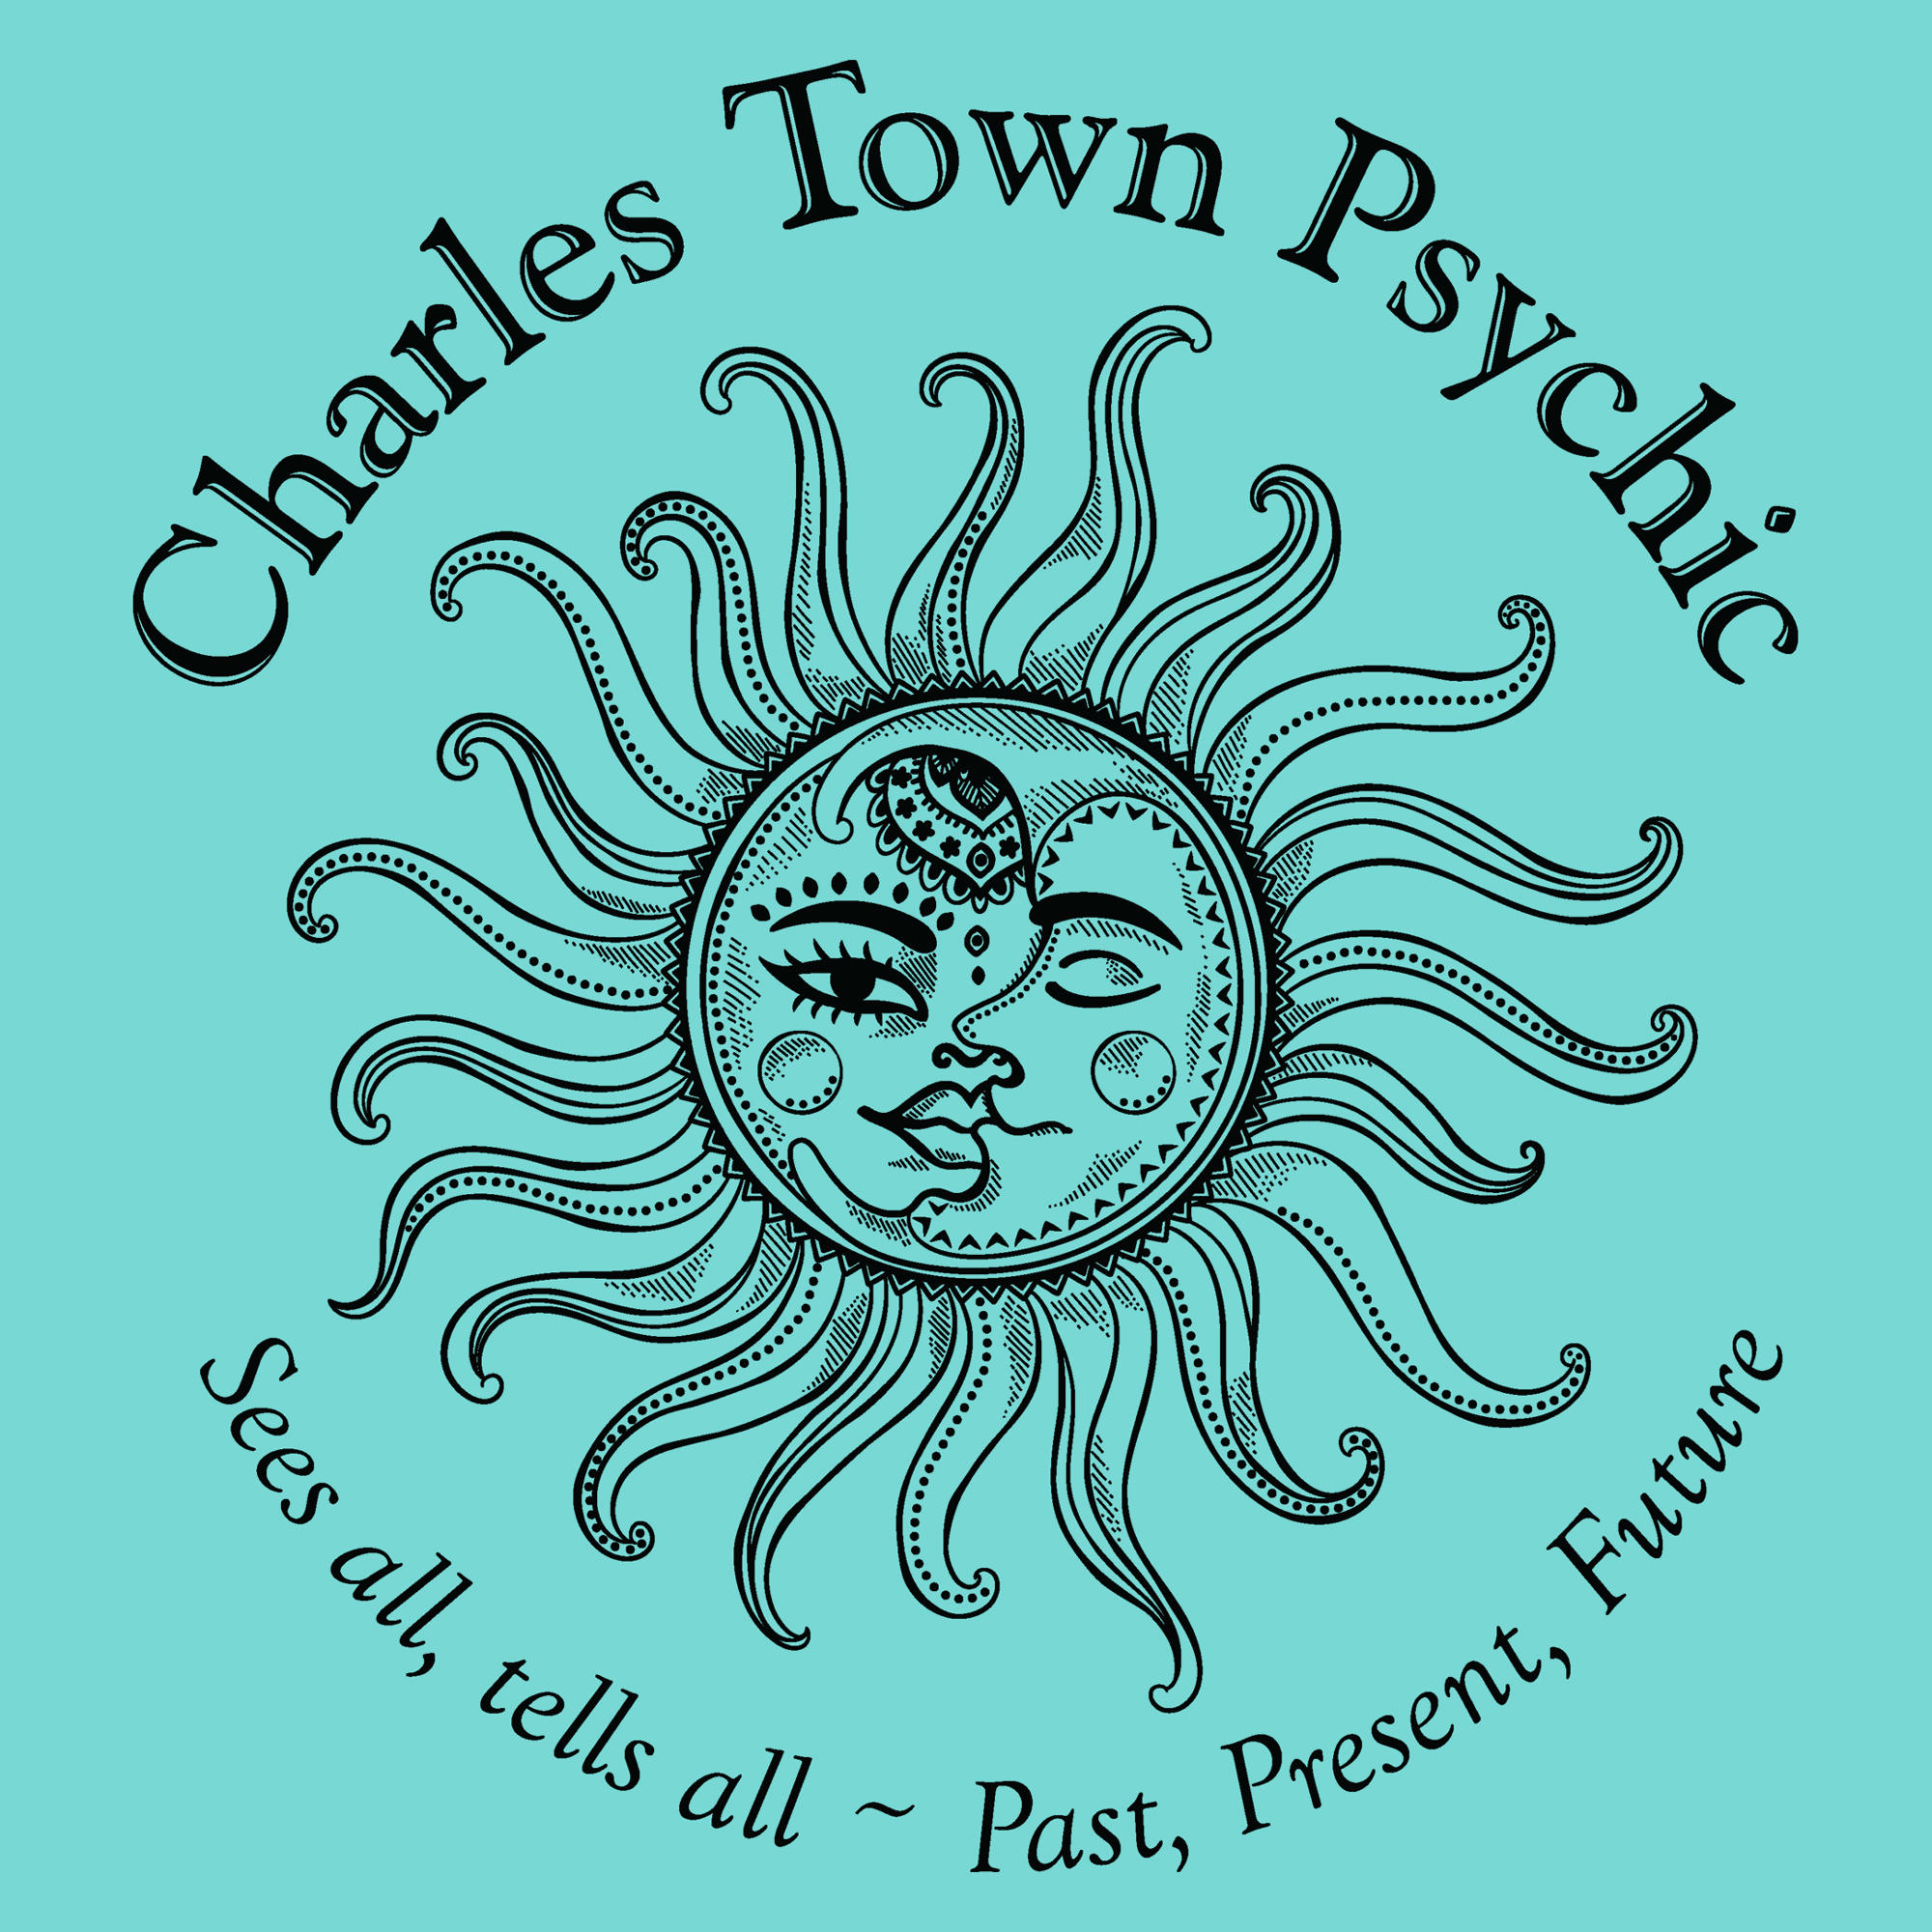 Charles Town Psychic